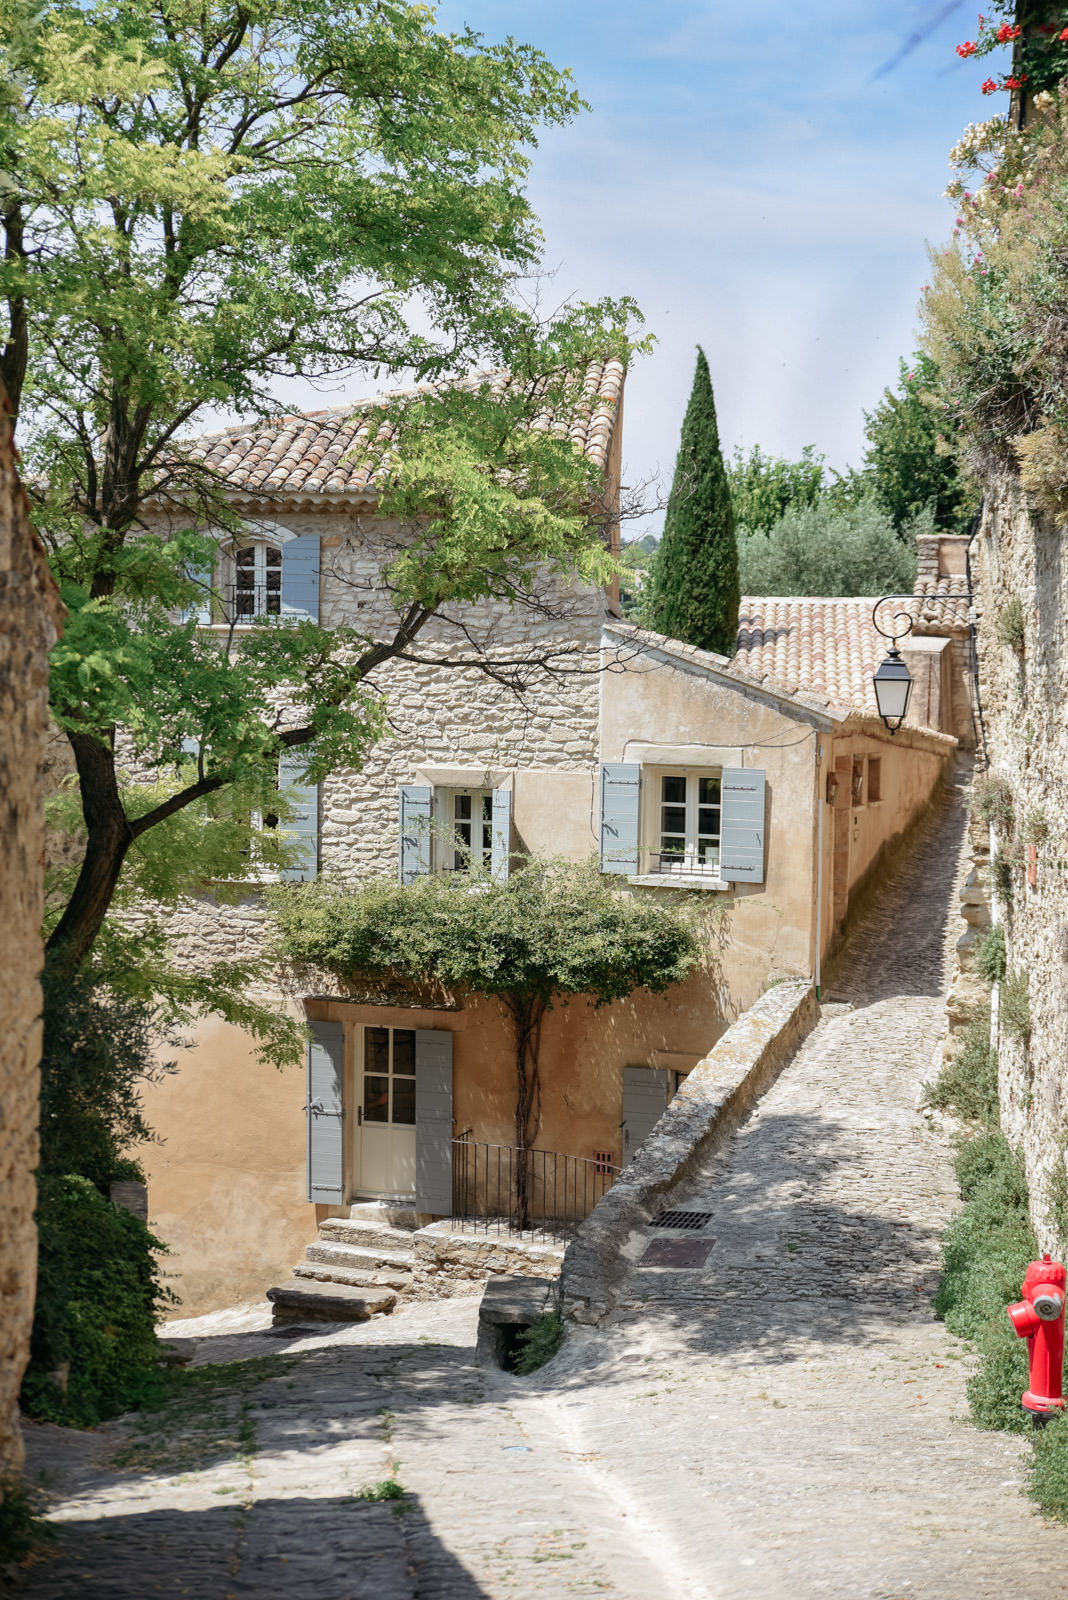 Blog-Mode-And-The-City-Lifestyle-Provence-Voyage-Gordes-13